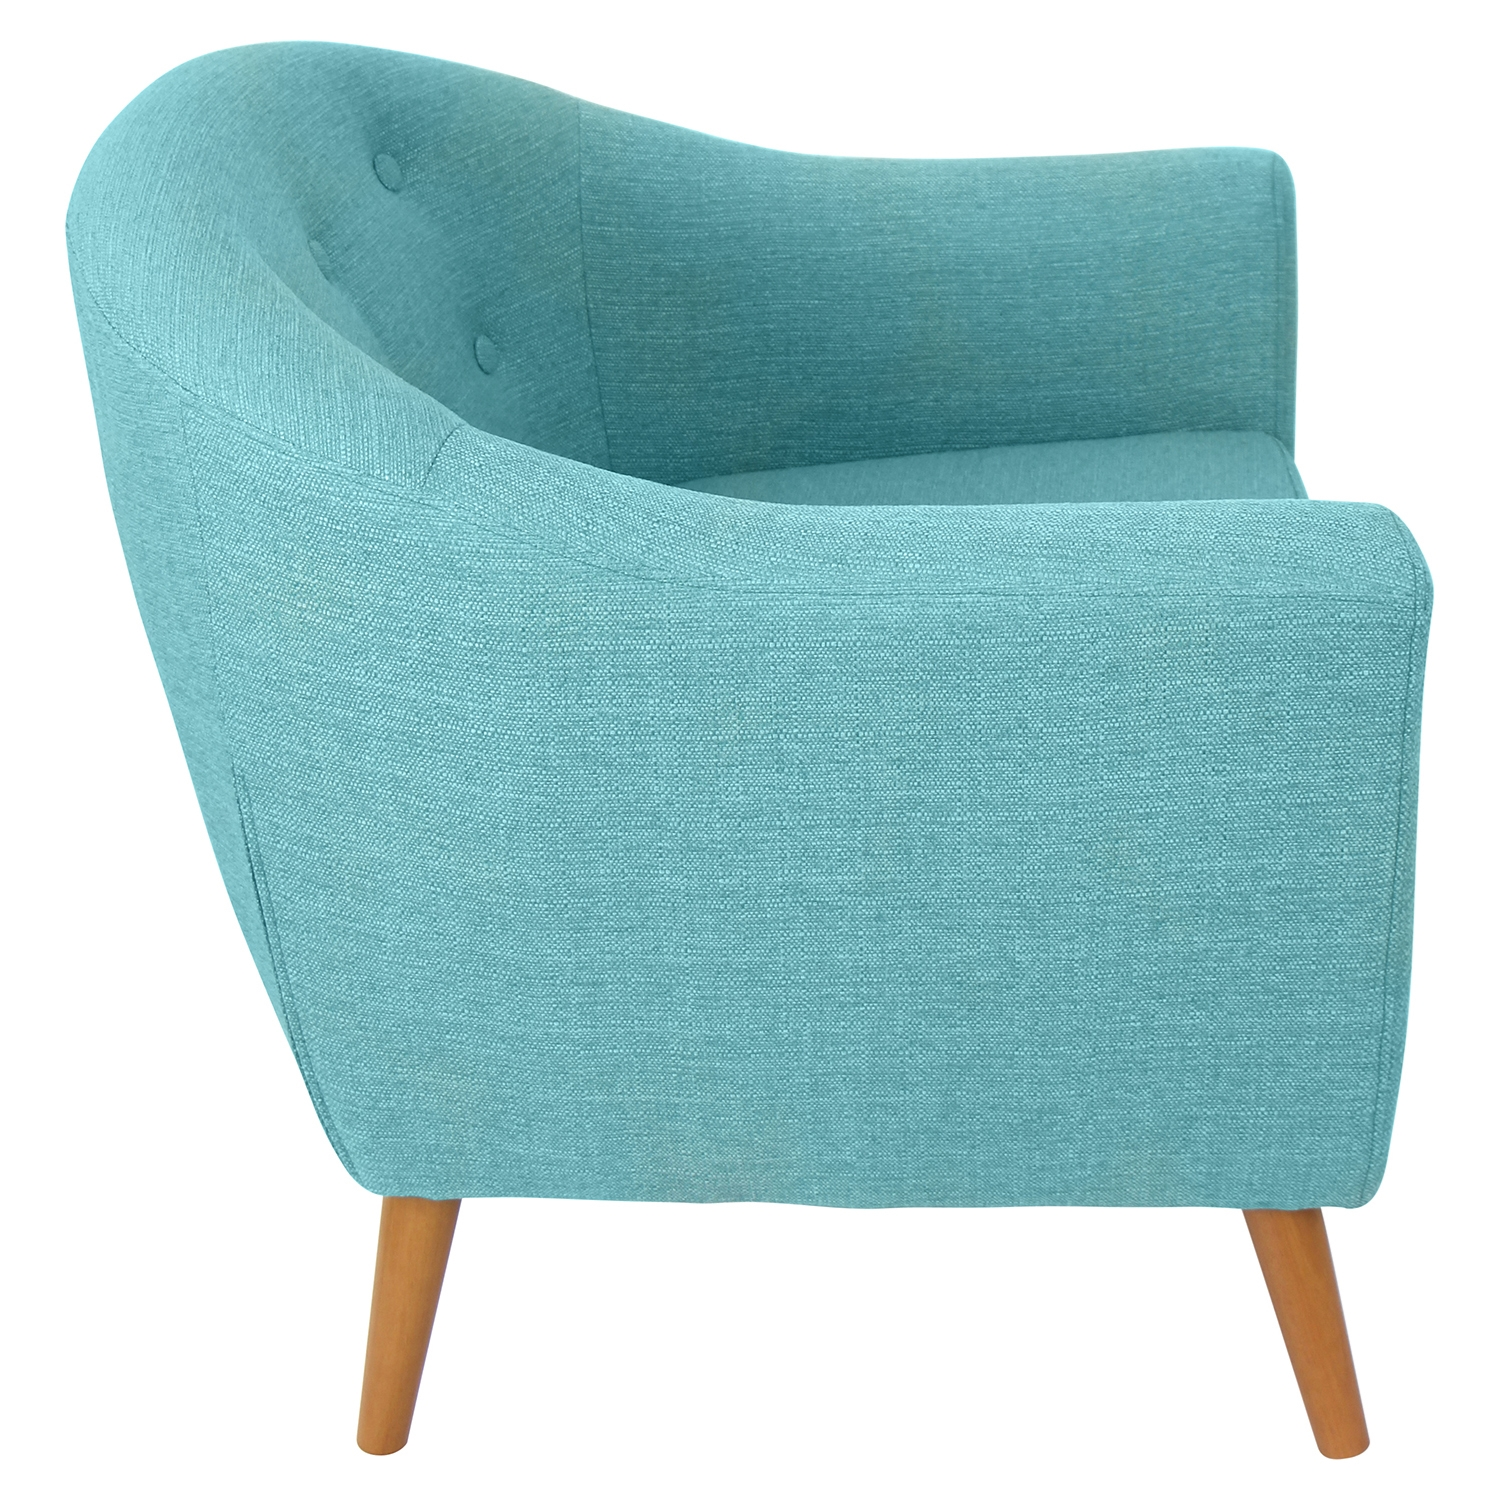 Rockwell Upholstery Armchair - Button Tufted, Teal - LMS-CHR-AH-RKWL-TL